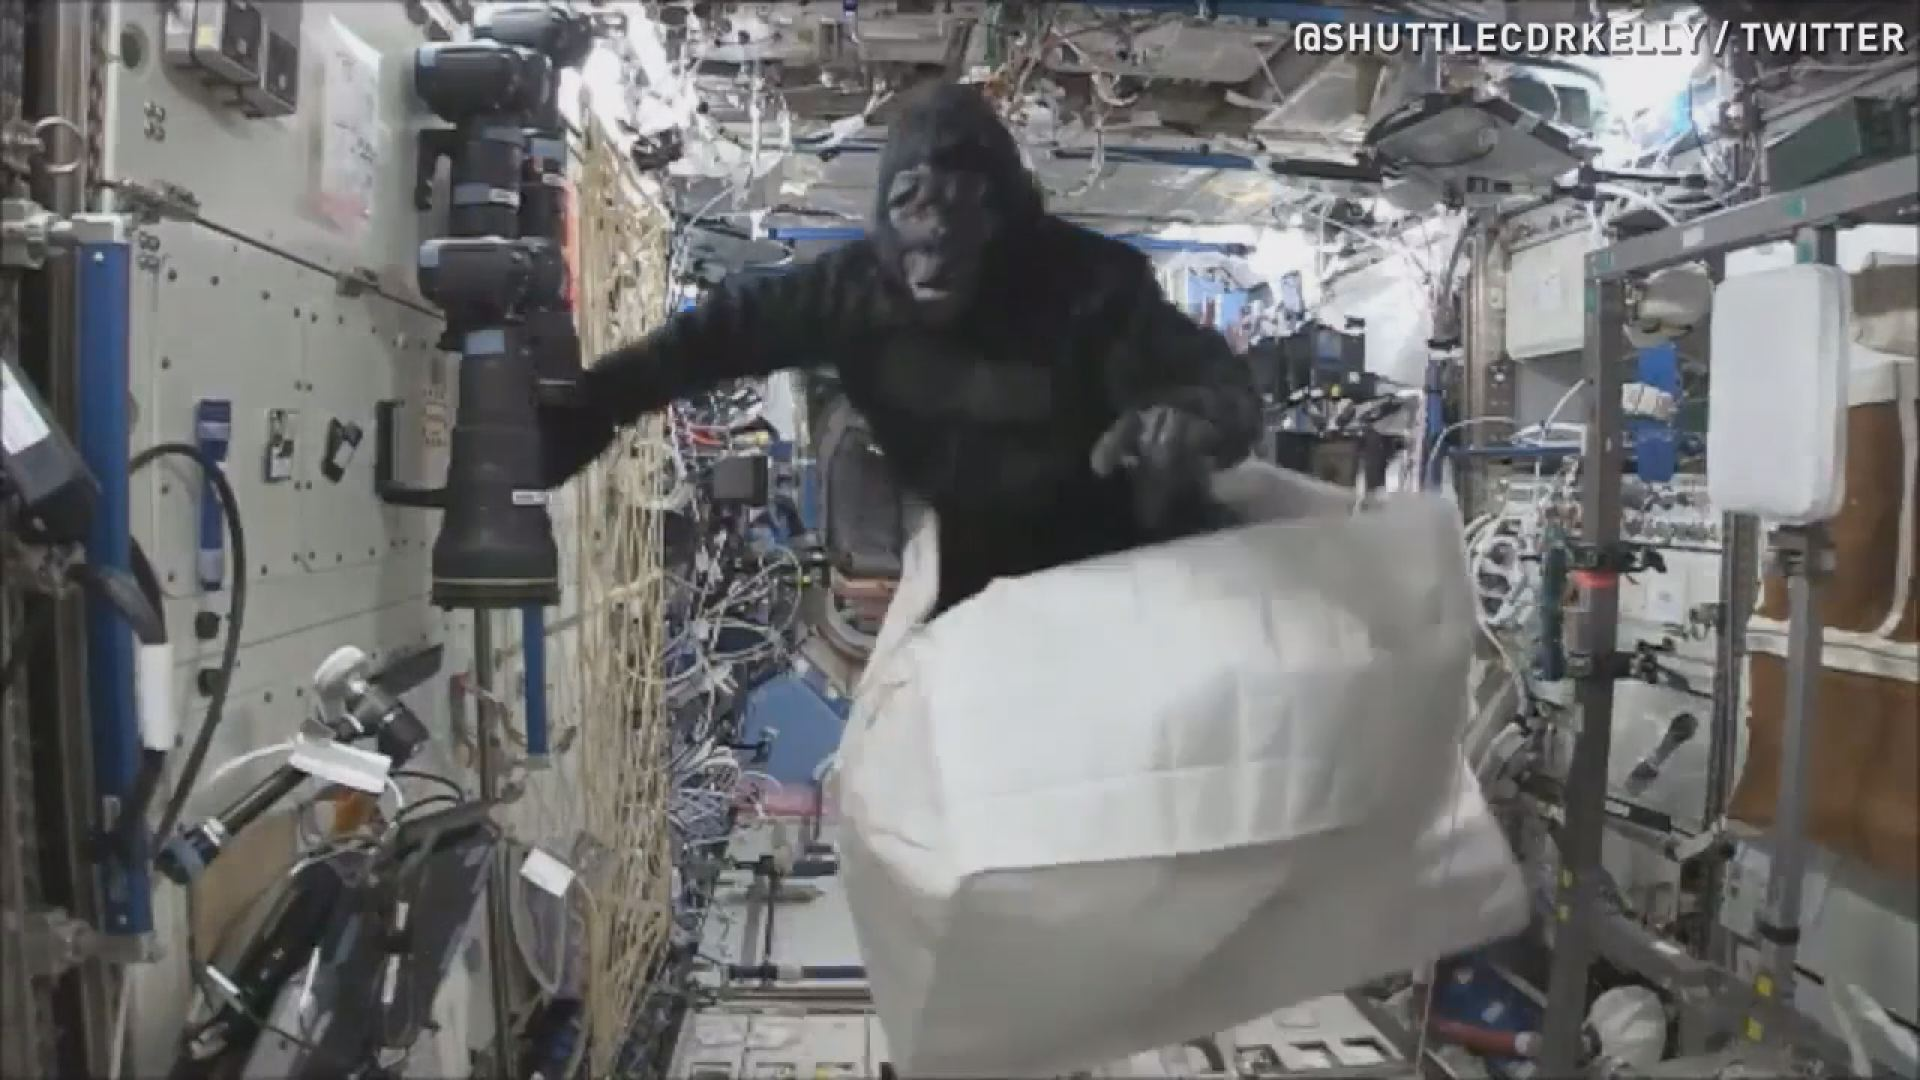 Watch monkey business in outer space for Jobs in outer space